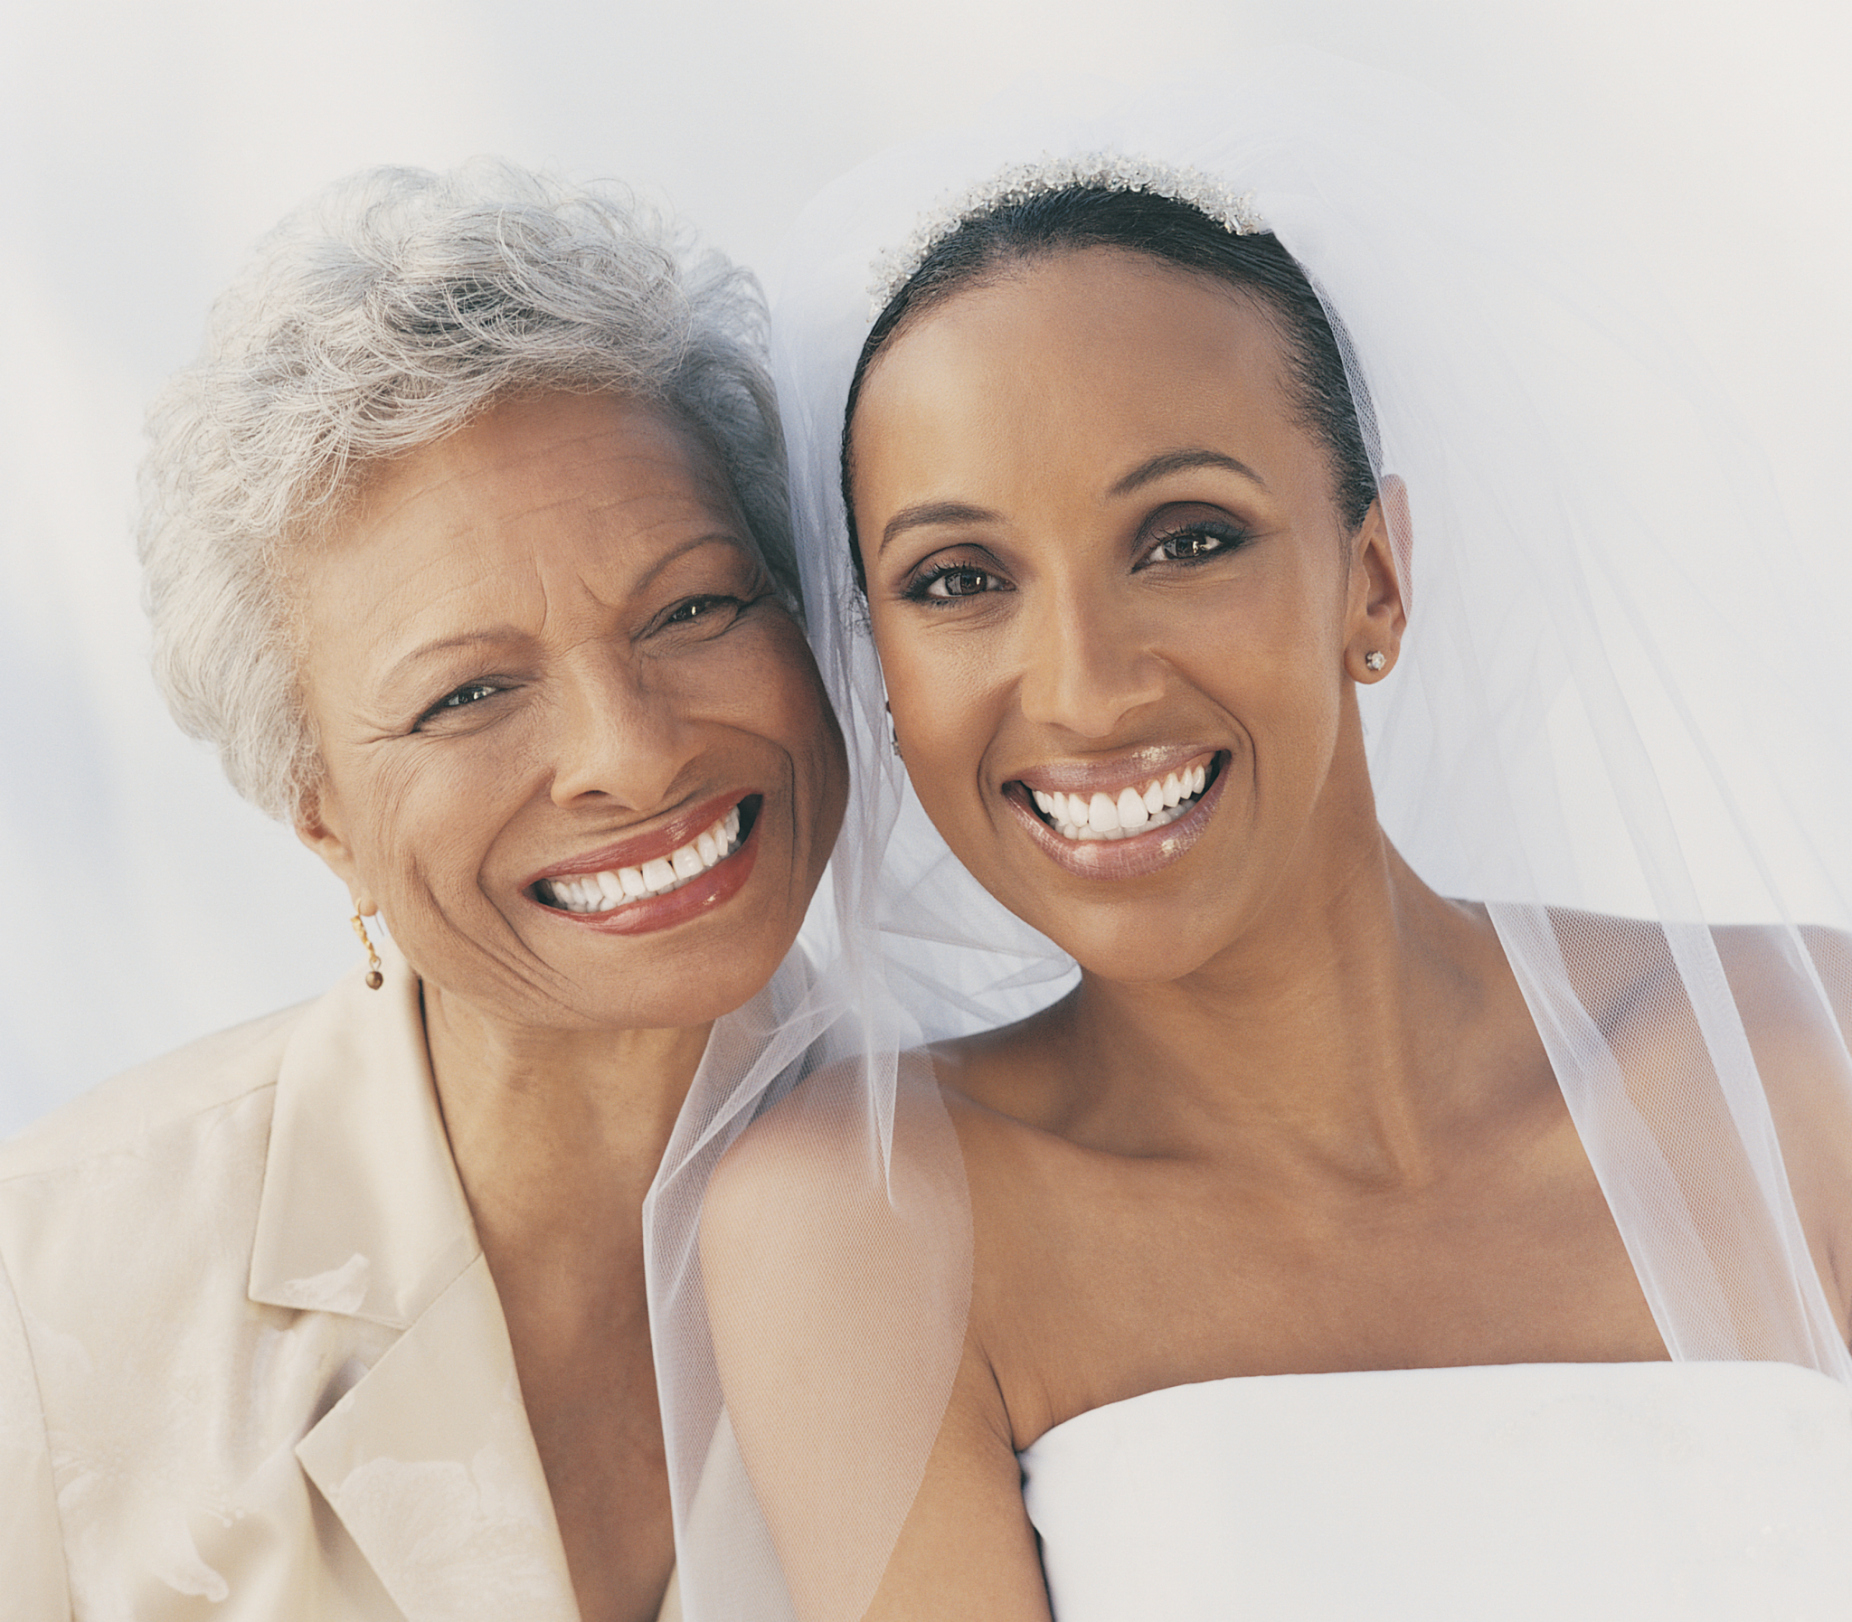 Wedding Etiquette And Mother Of The Bride Responsibilities